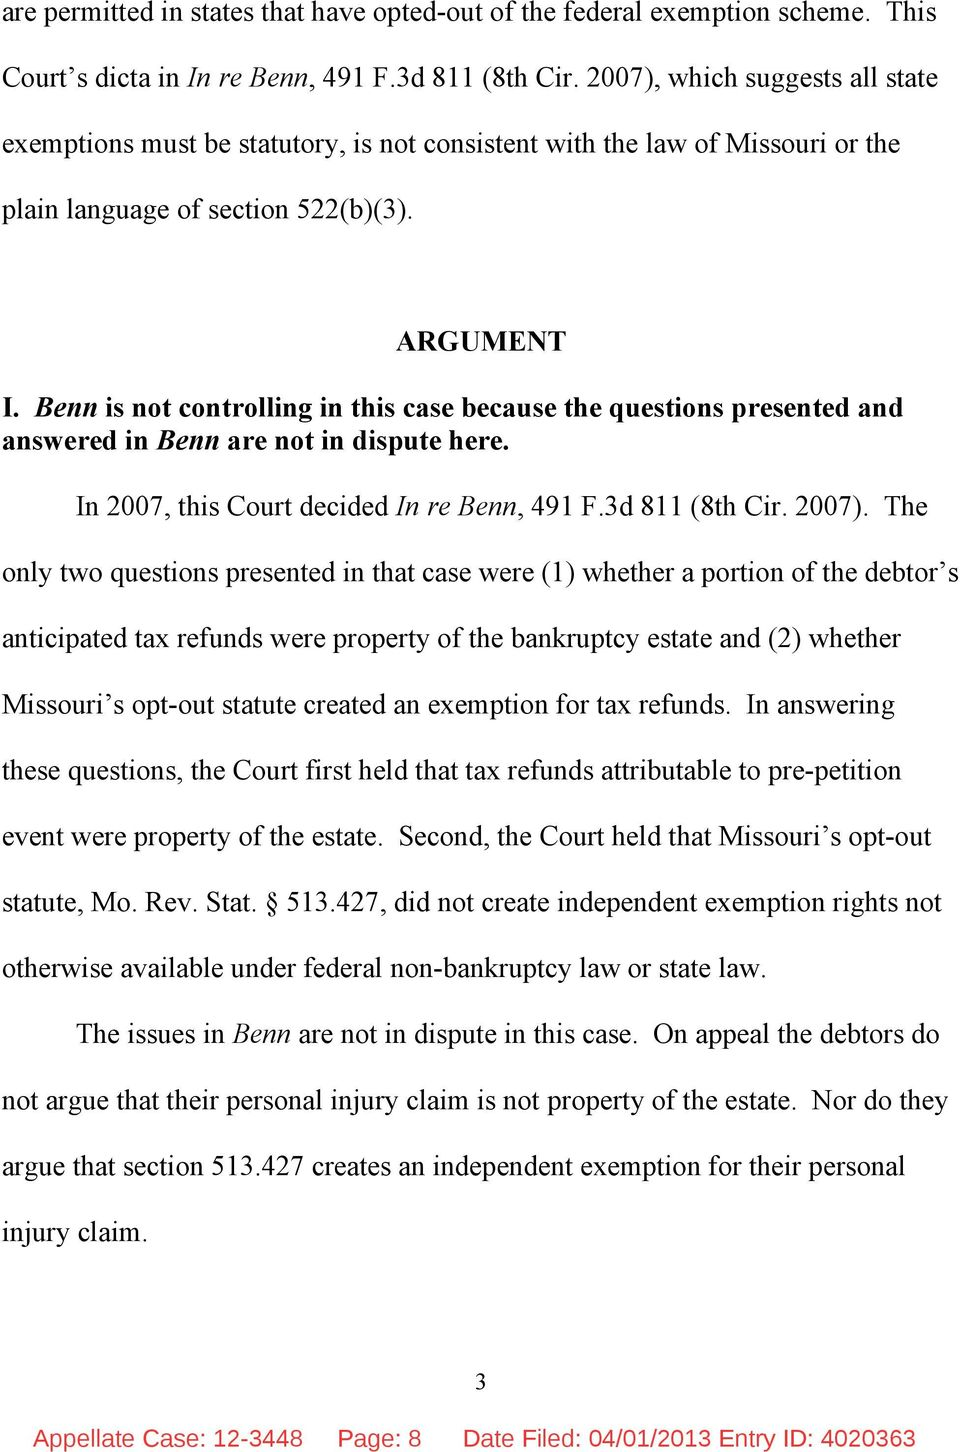 Benn is not controlling in this case because the questions presented and answered in Benn are not in dispute here. In 2007, this Court decided In re Benn, 491 F.3d 811 (8th Cir. 2007).